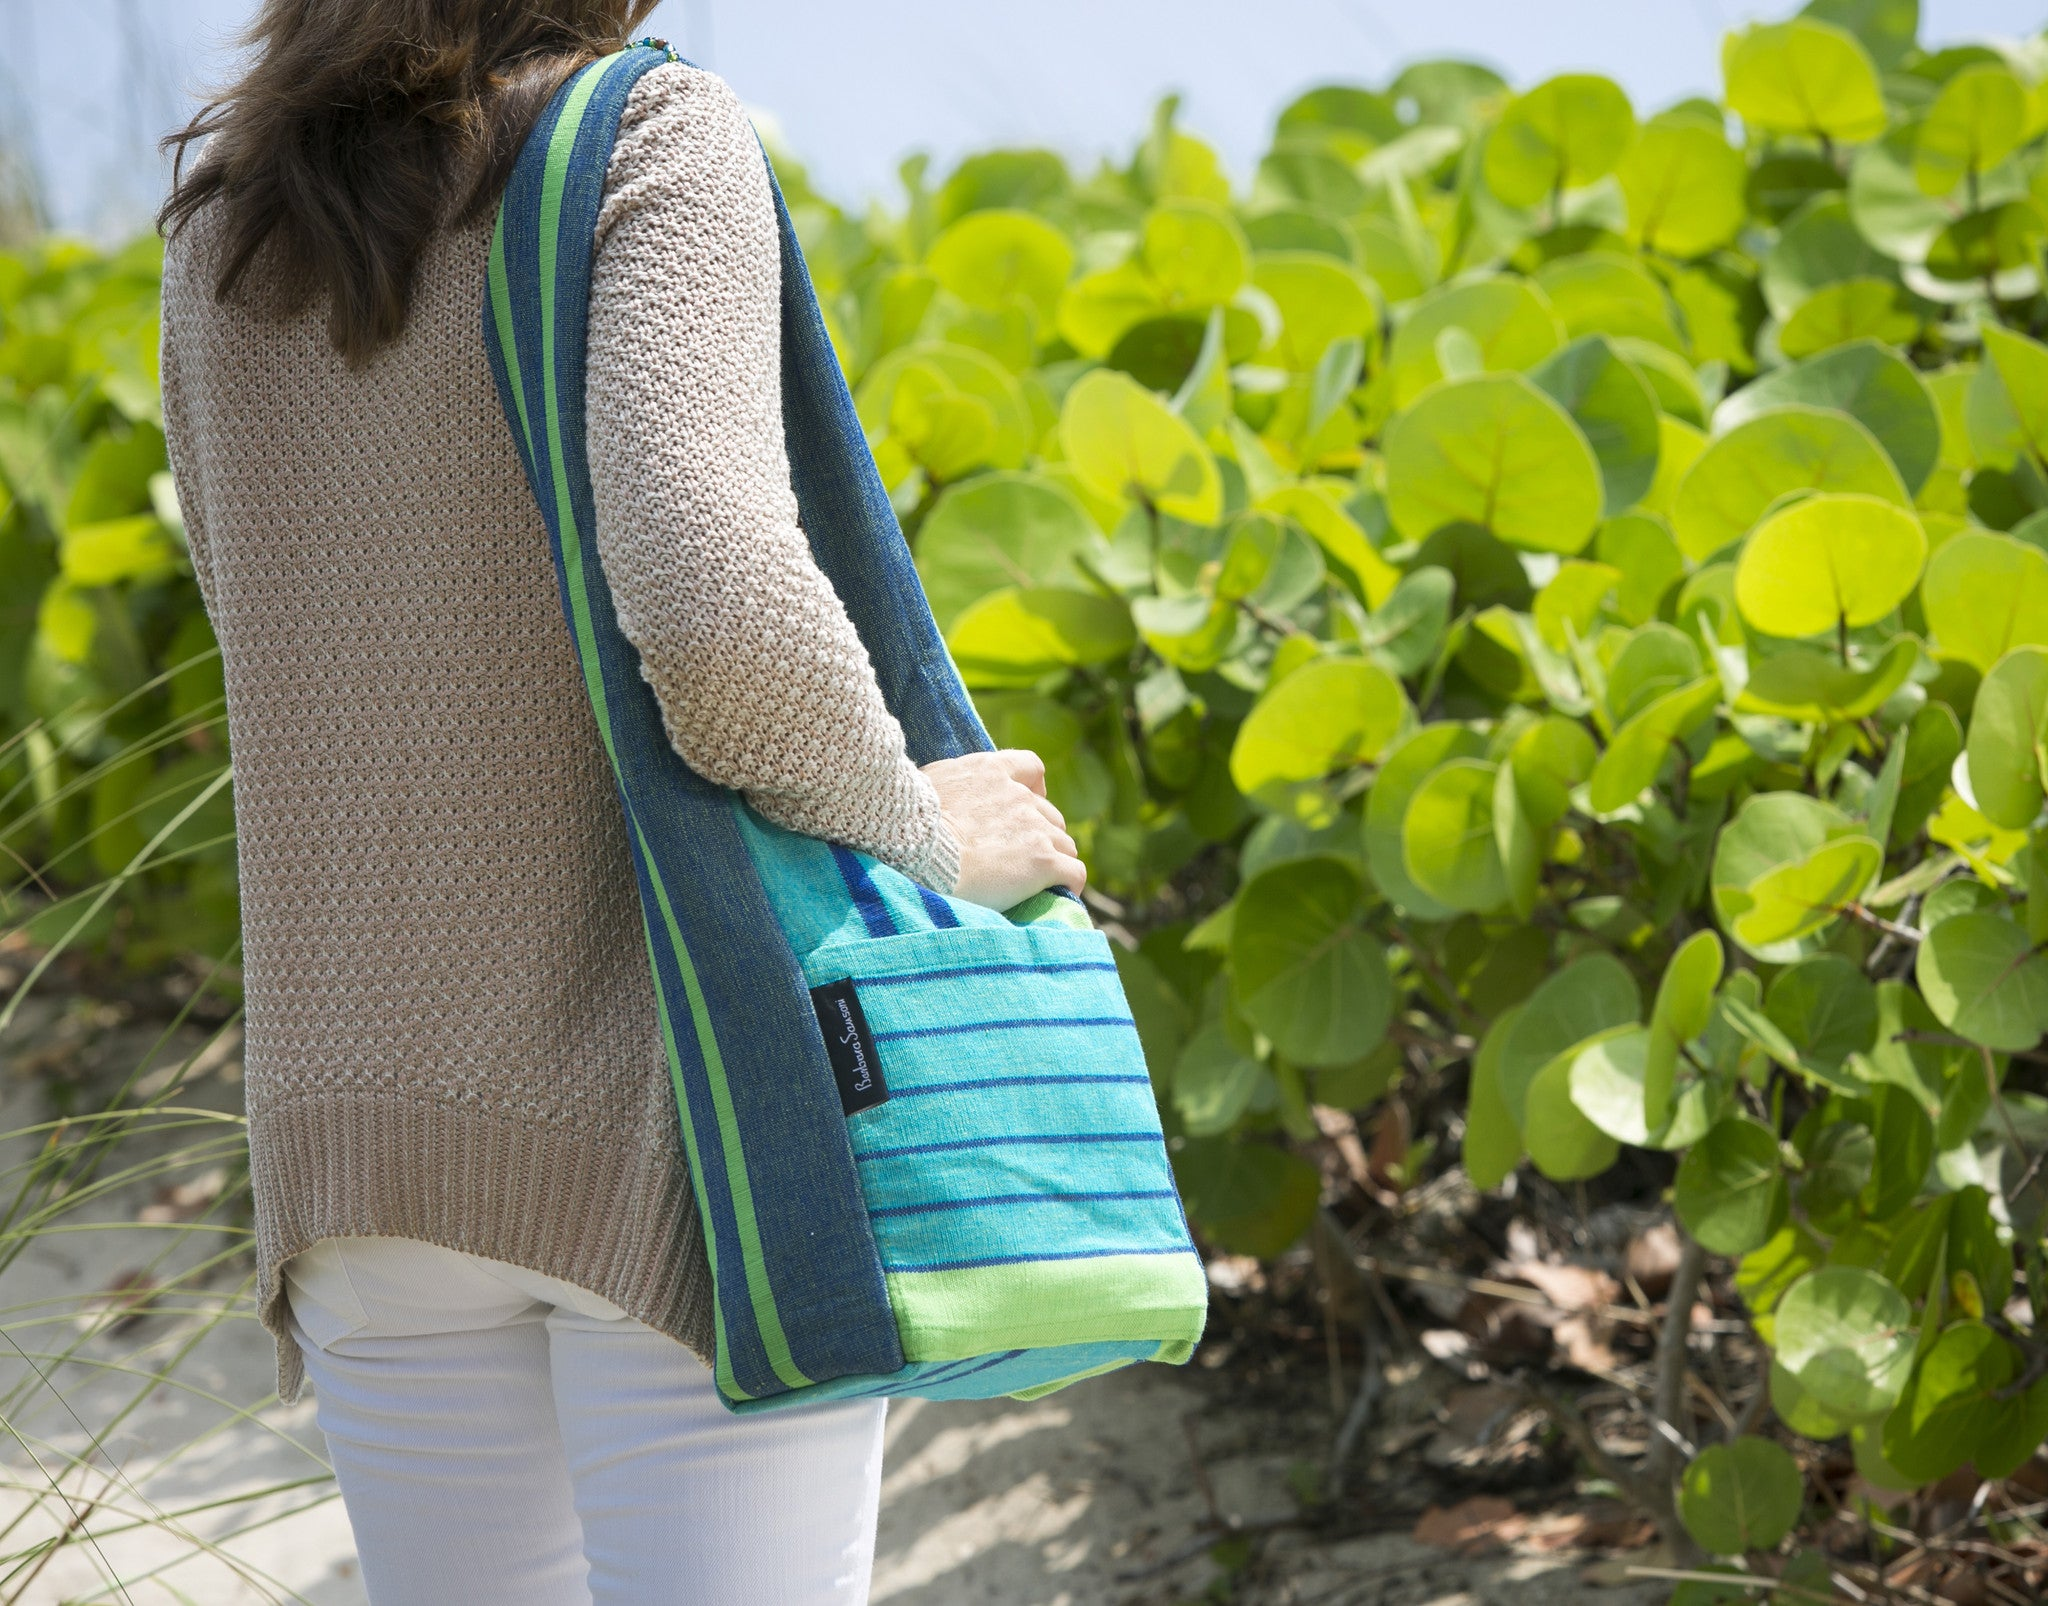 The Versatile Shoulder Bag - Great for a day at the beach! (sample fabric shown in medium size)